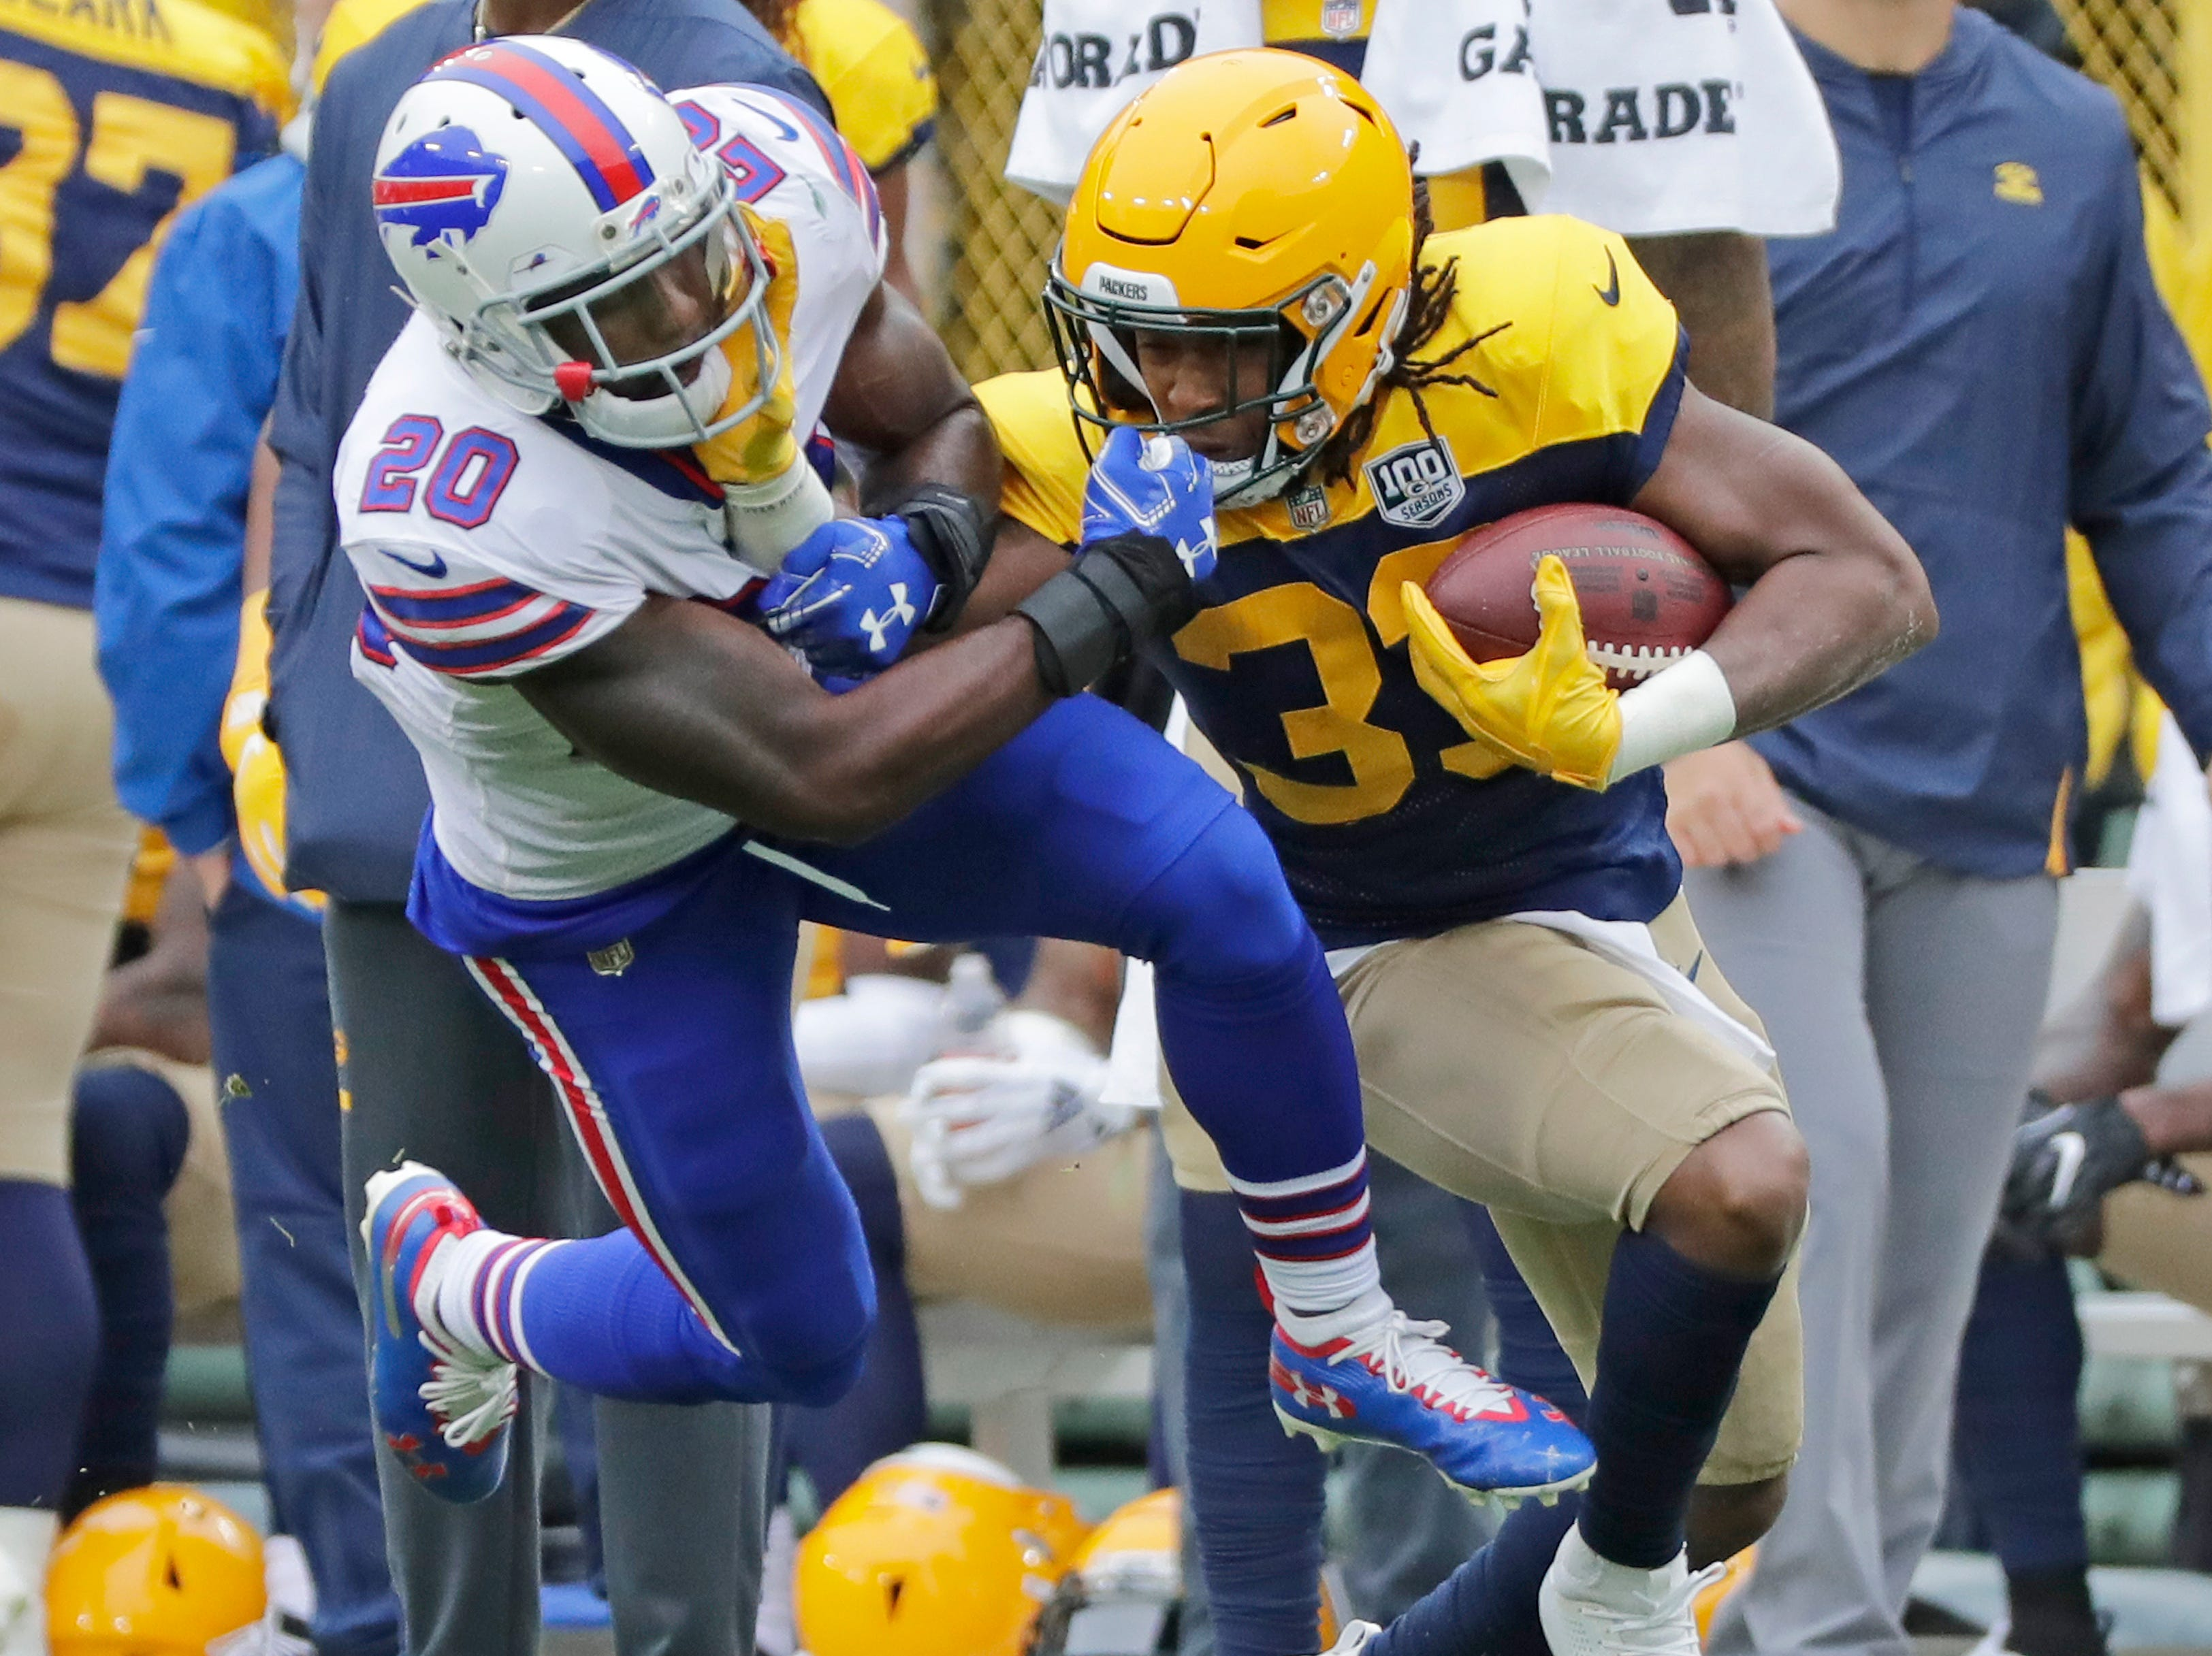 Green Bay Packers running back Aaron Jones (33) stiff arms Buffalo Bills defensive back Rafael Bush (20) in the first quarter at Lambeau Field on Sunday, September 30, 2018 in Green Bay, Wis.